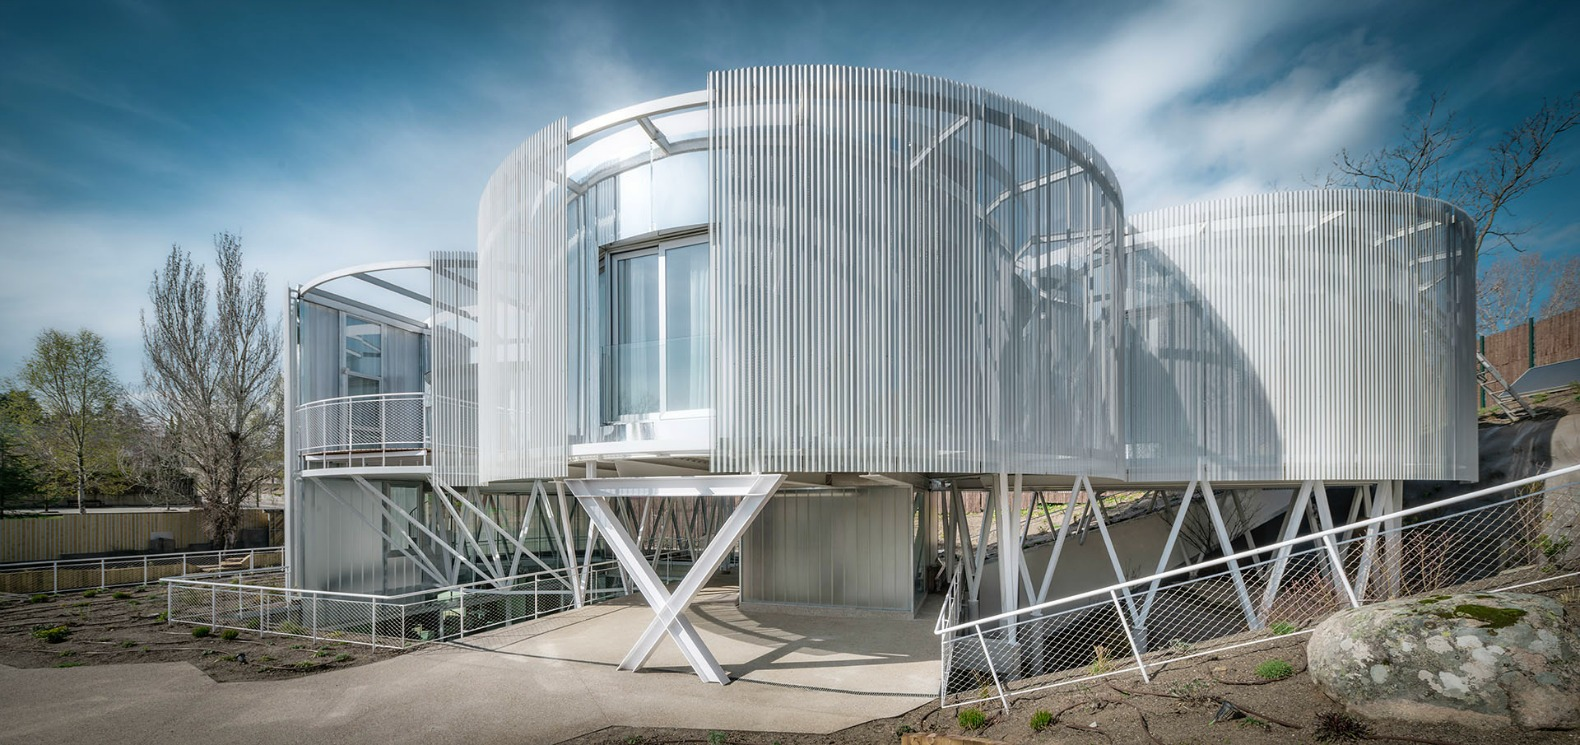 Futuristic home made of massive steel cylinders hides two houses in one